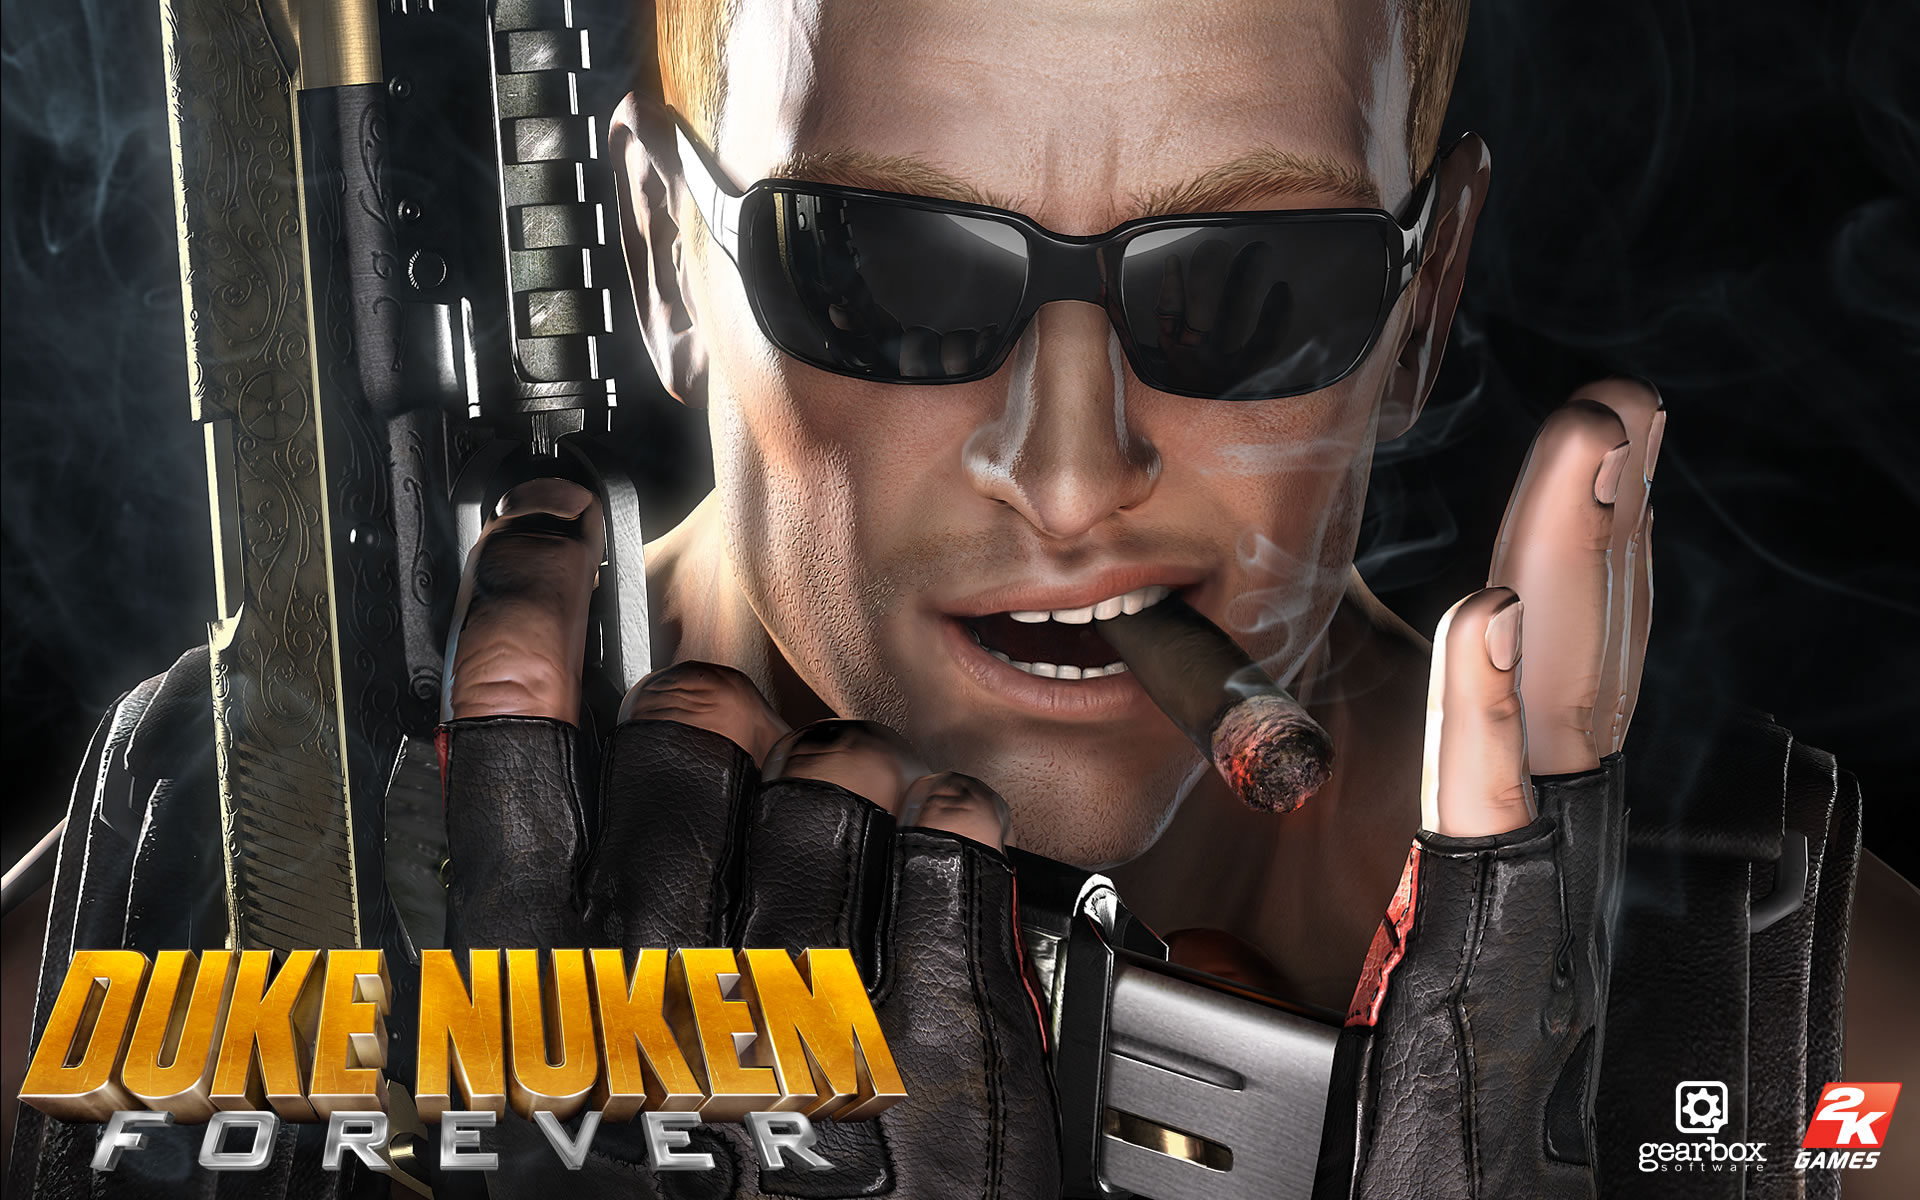 Duke Nukem Forever Game 445.63 Kb